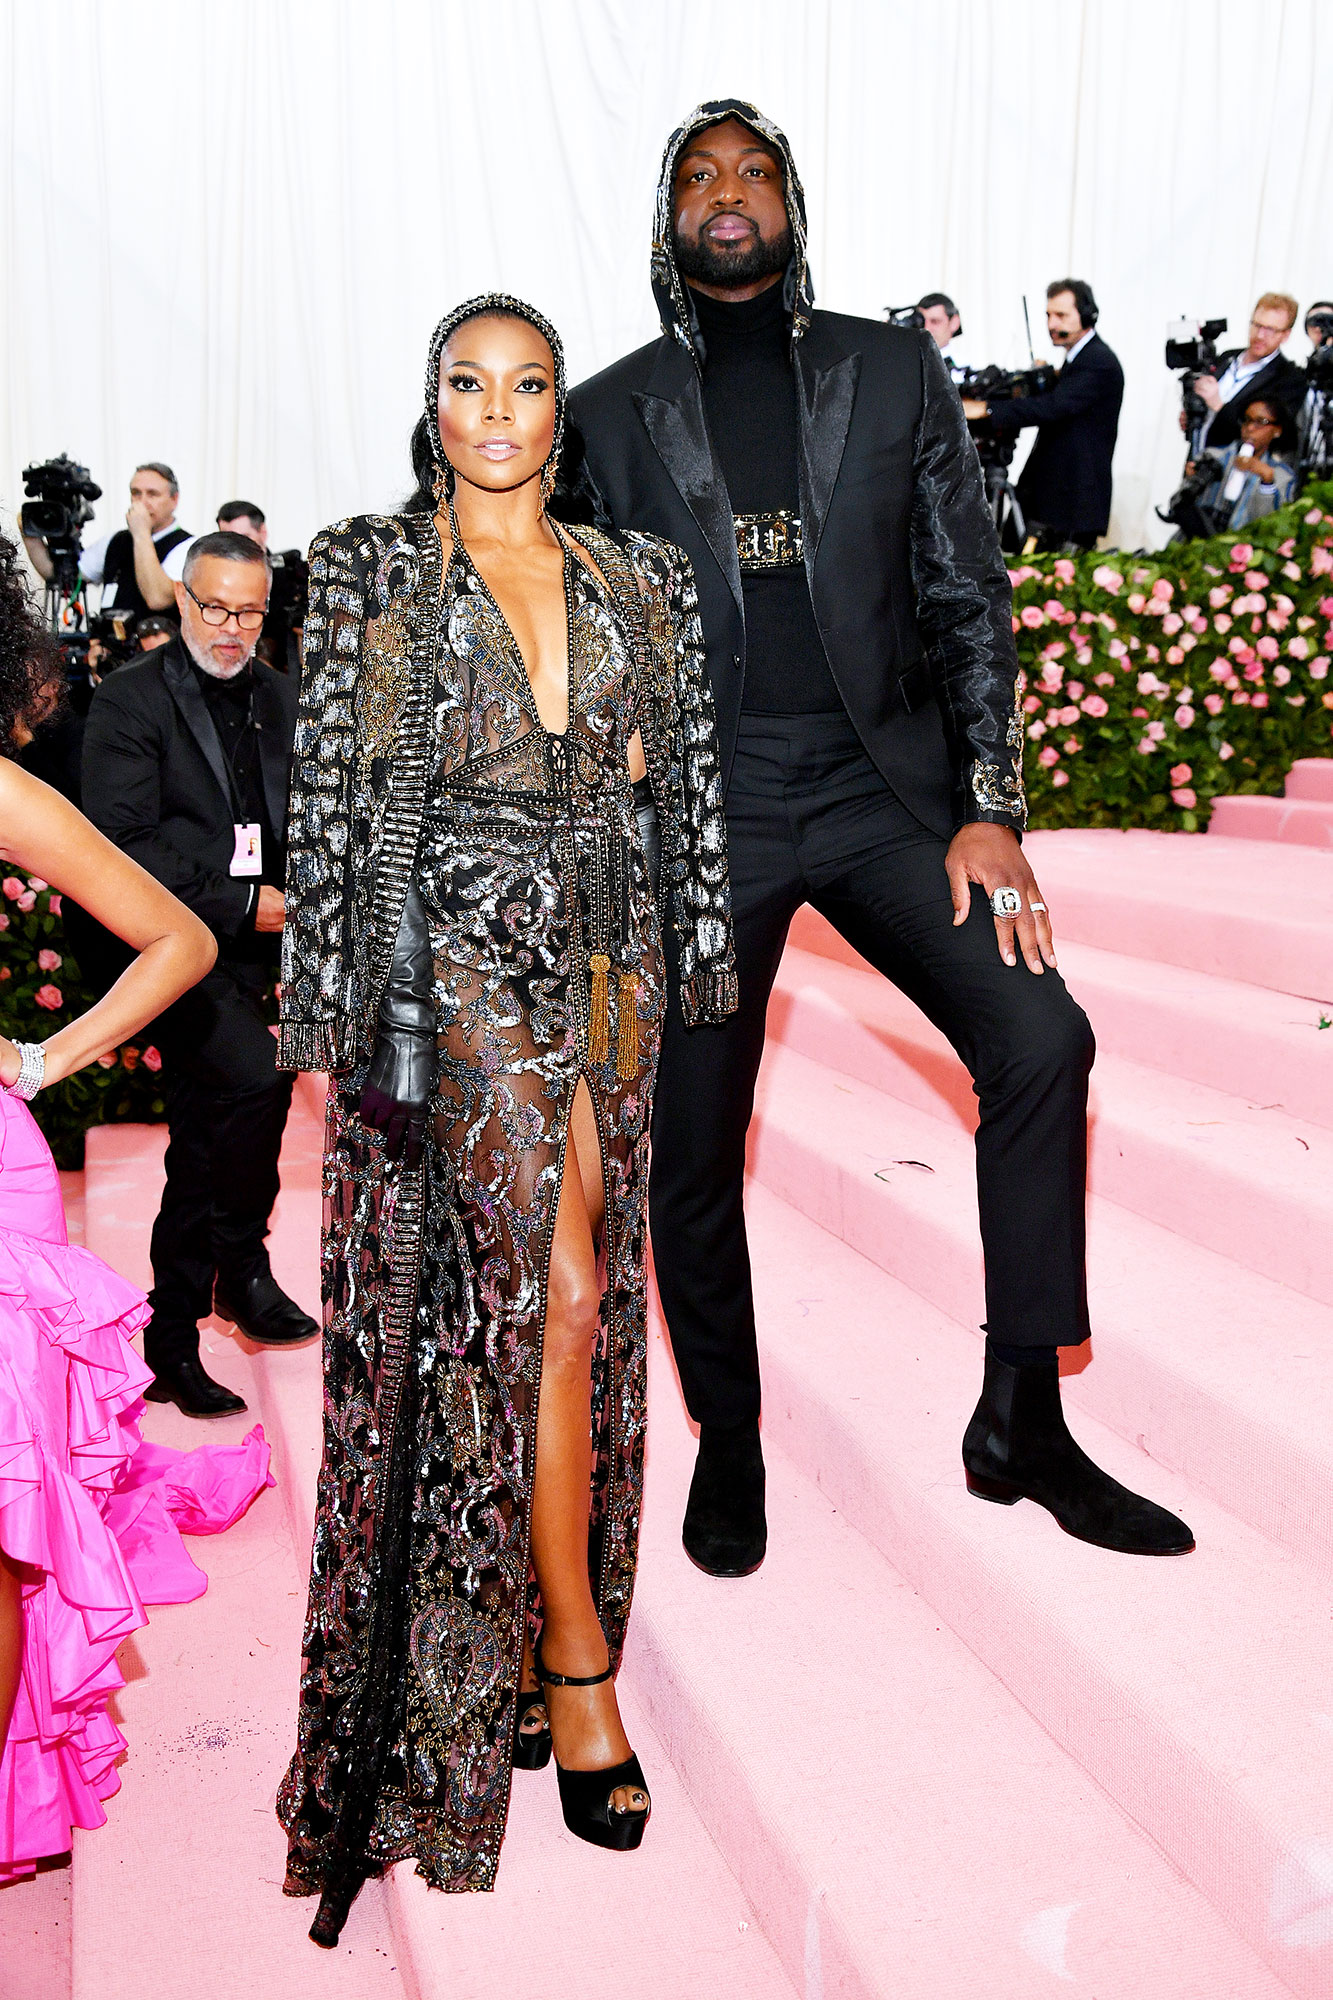 Gabrielle Union and Dwyane Wade met gala 2019 couples - The super stylish couple sported matching headpieces that paired perfectly with Union's nearly naked Dundas design.